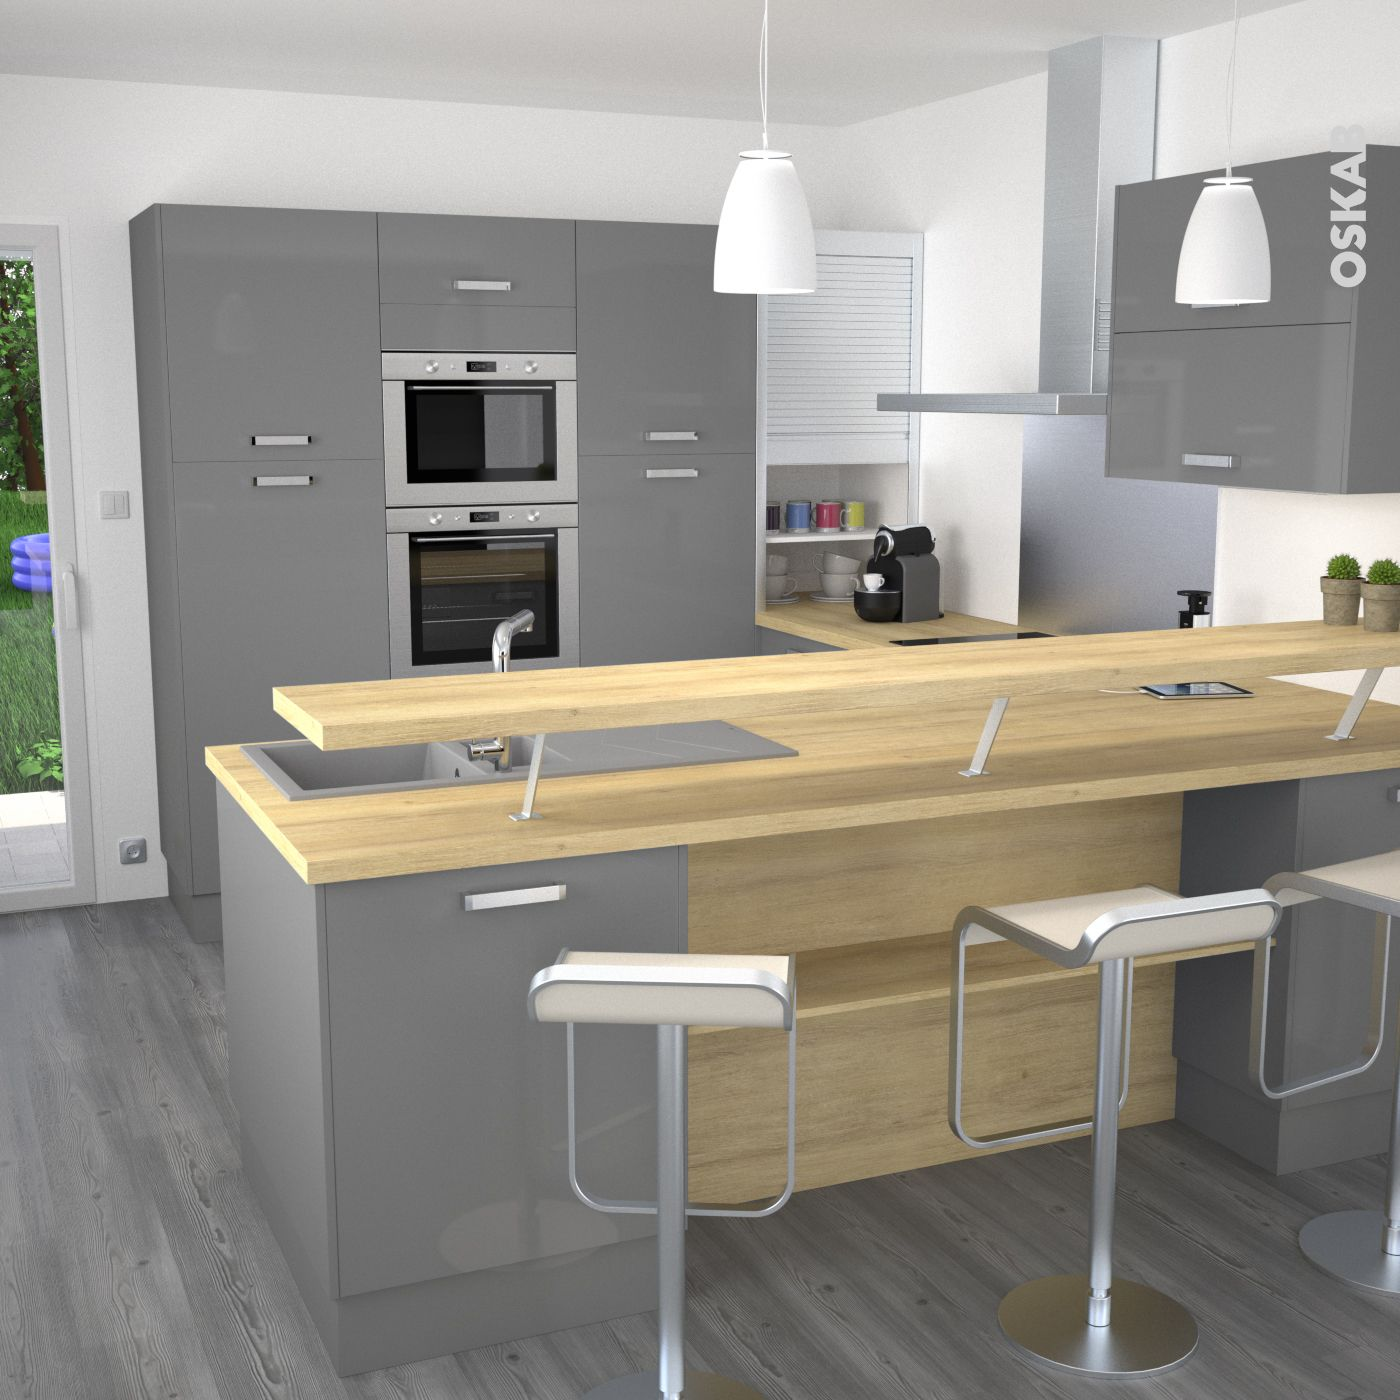 cuisine grise moderne faade stecia gris brillant design plan de travail and snacks - Cuisine En U Plan